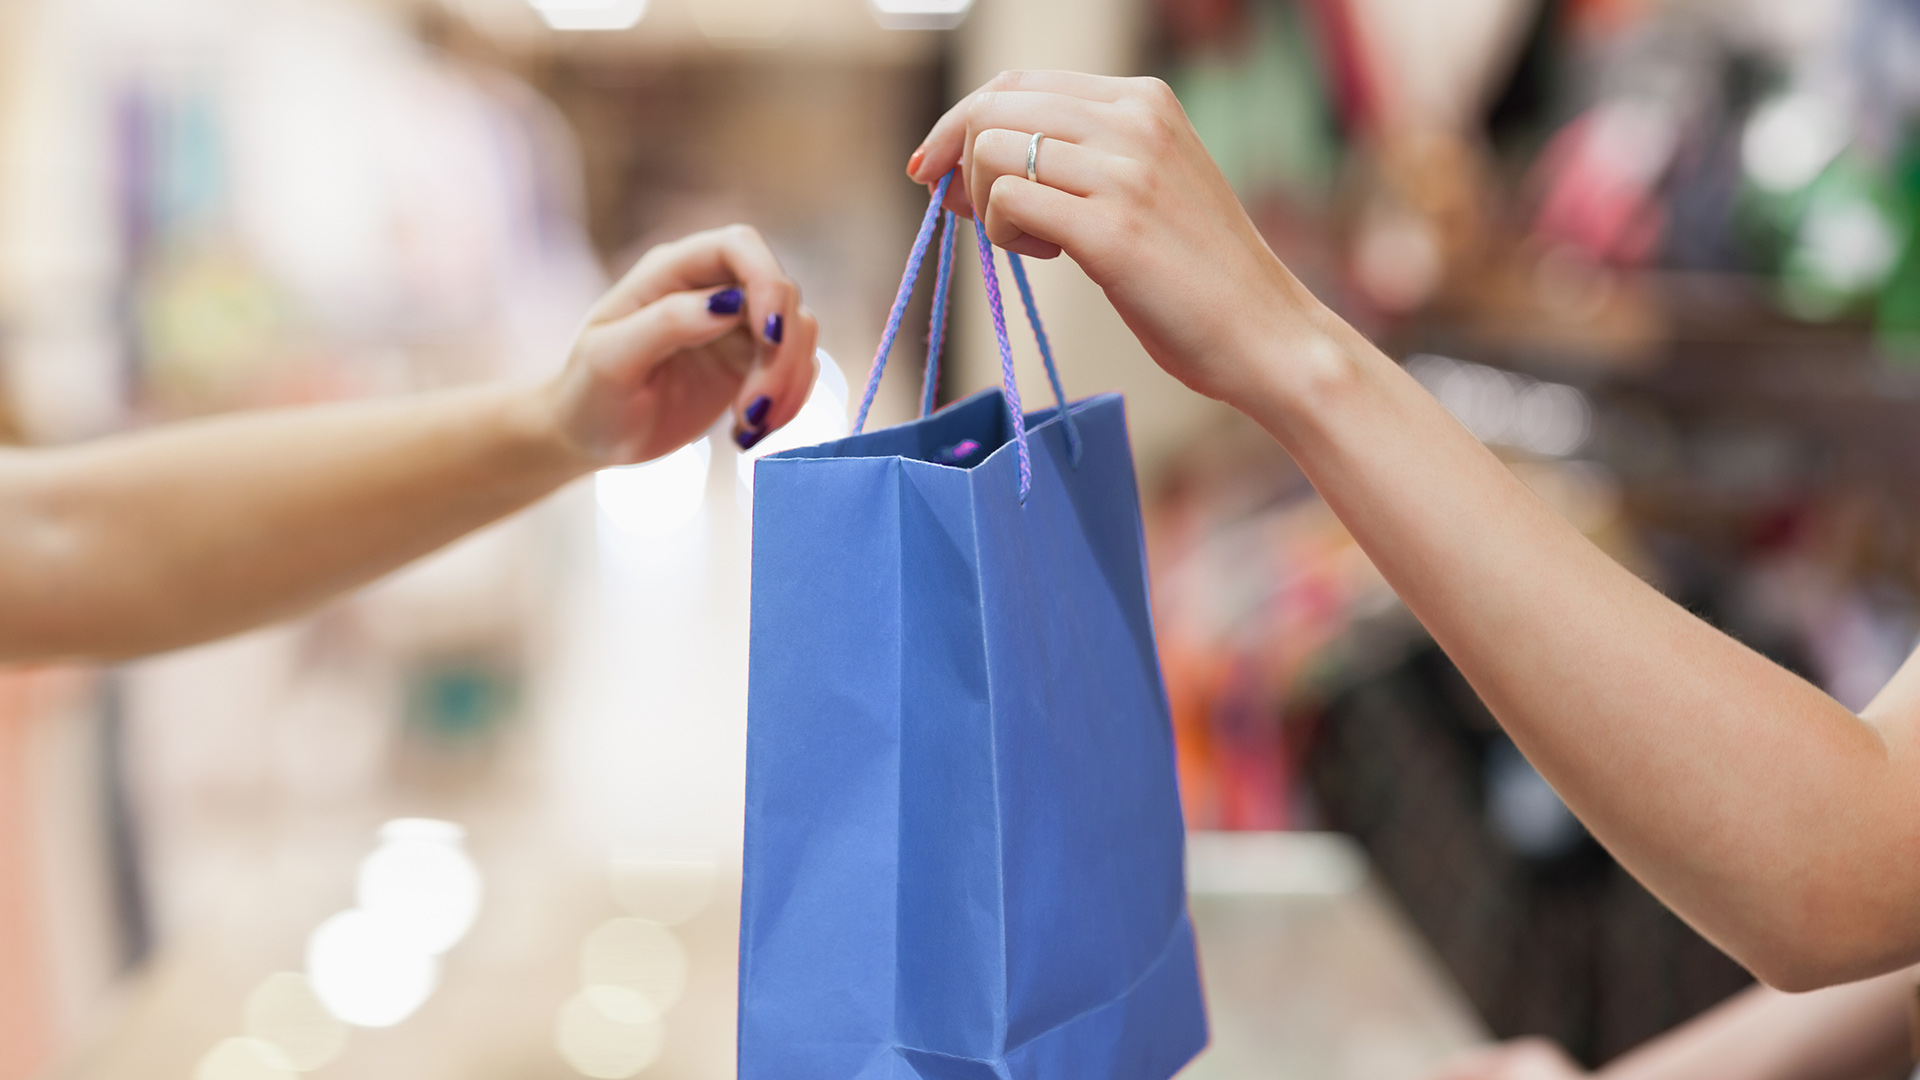 The State of Returns: What Retailers Can Expect from Consumers in 2021